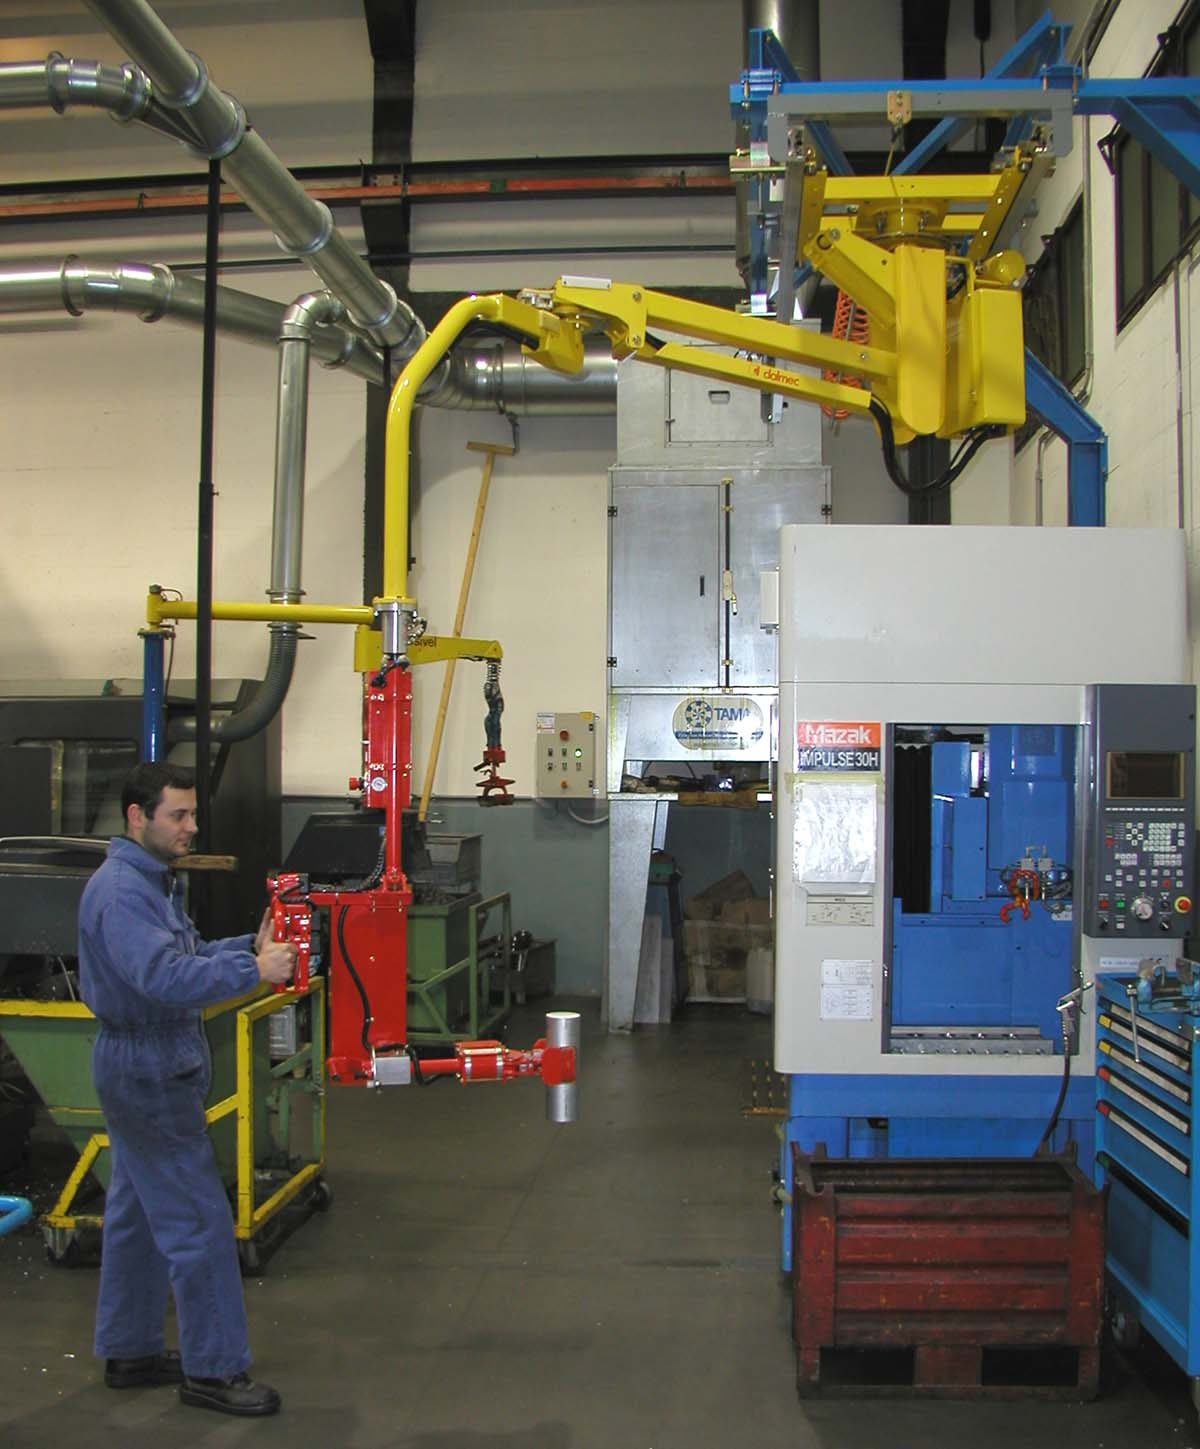 Manipulator for mechanical parts - manual handlinf of